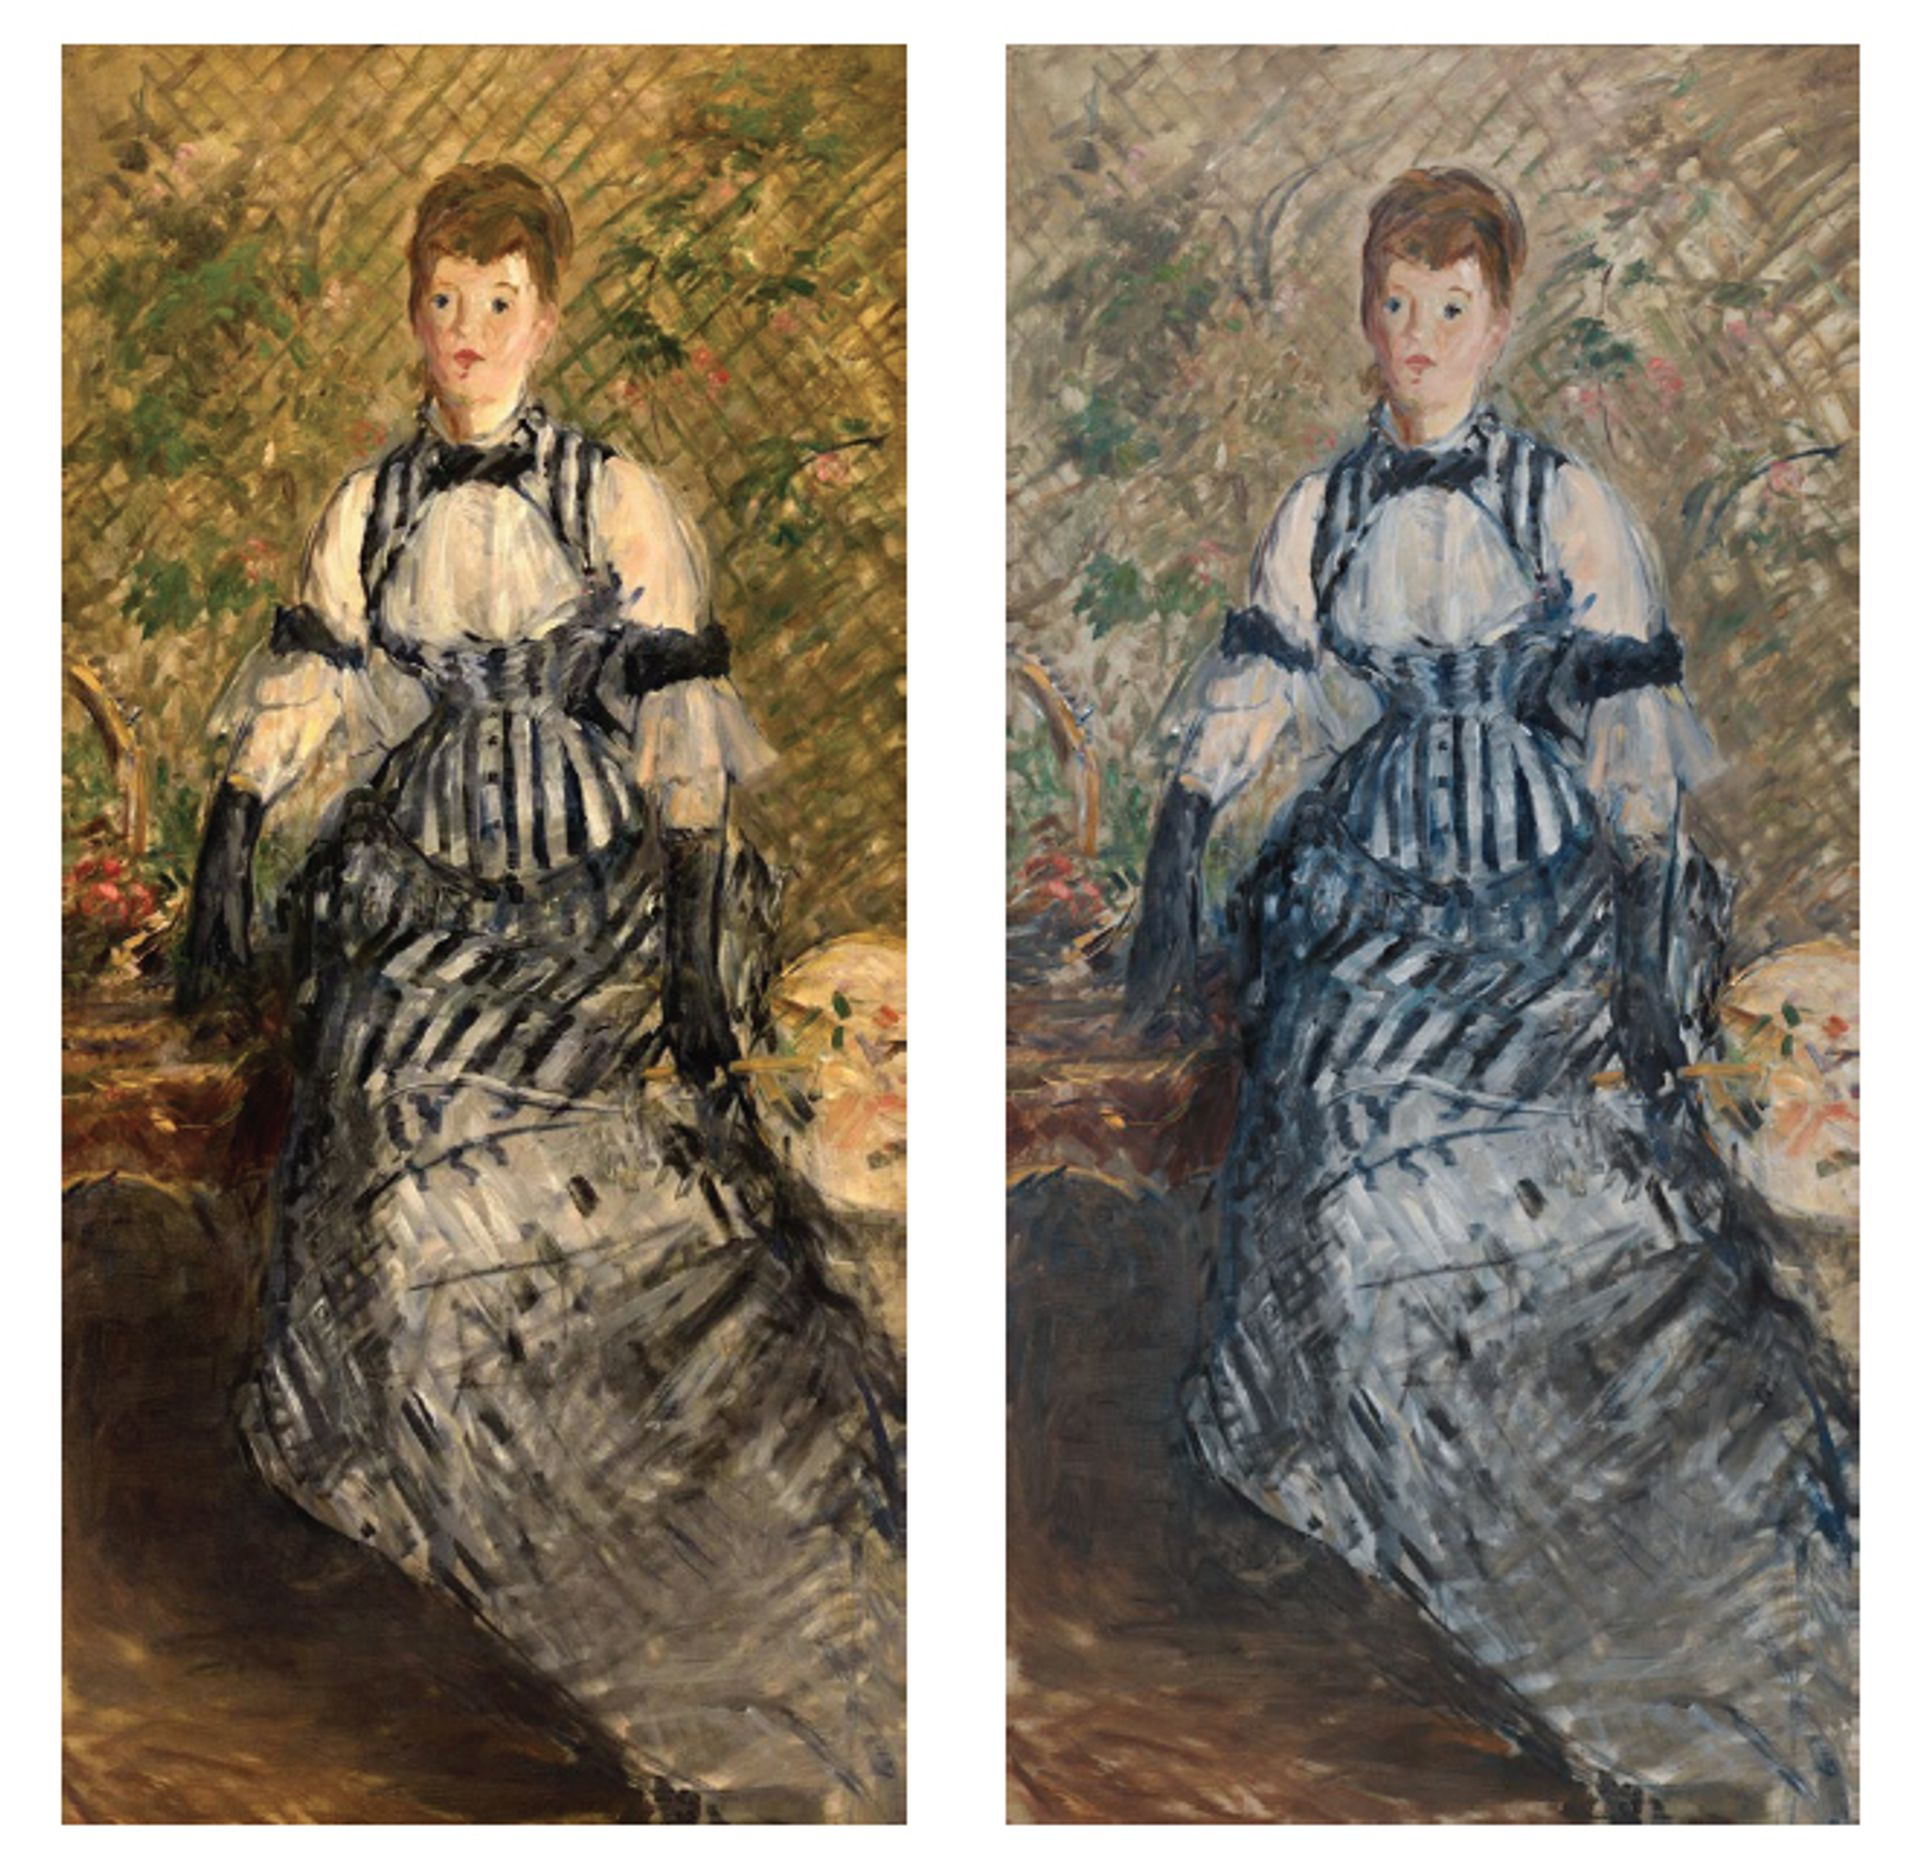 Édouard Manet, Woman in Striped Dress, before and after treatment, (1877-80) Solomon R. Guggenheim Foundation, 2018; photos: Kris McKay and Allison Chipak